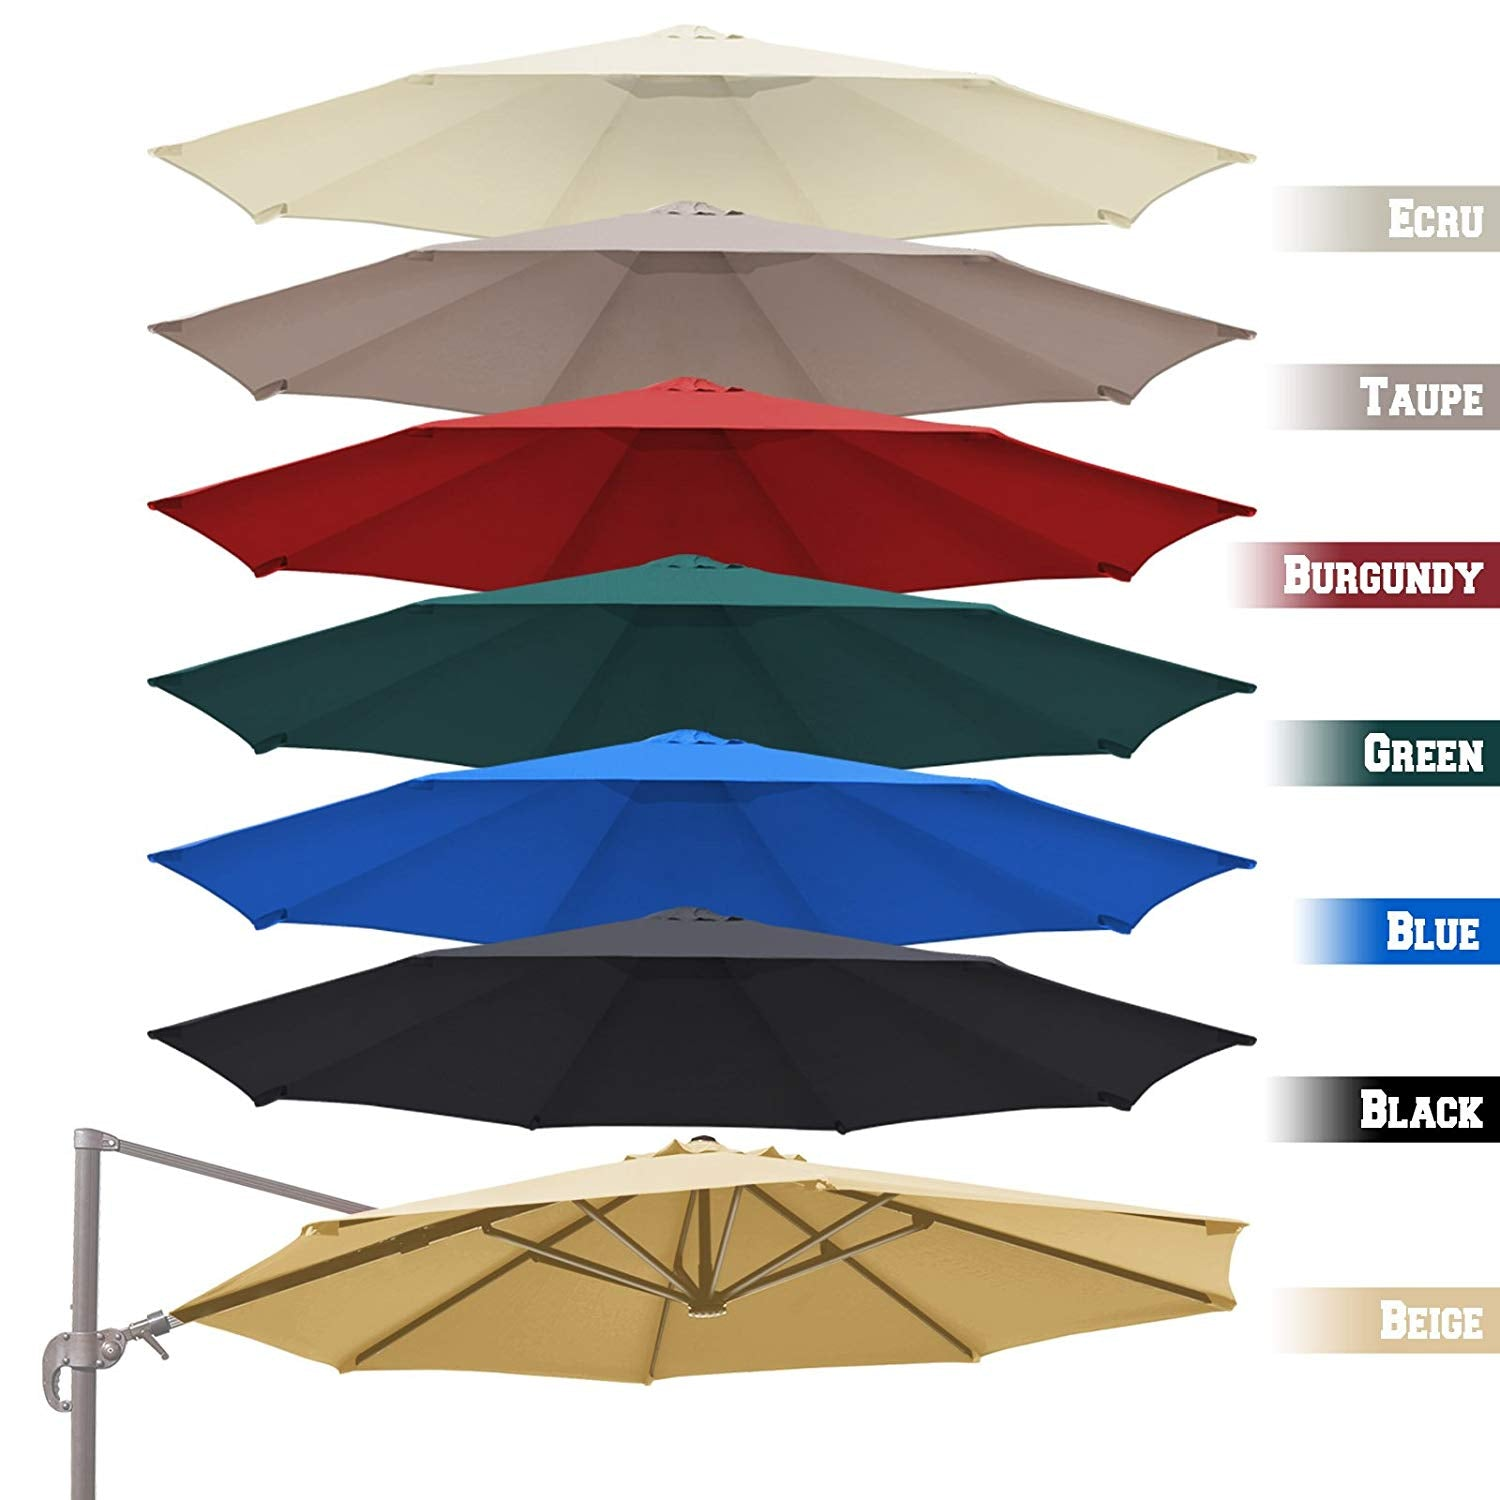 BenefitUSA Replacement Canopy Top Cover for 11.5' Rome Cantilever Patio Umbrella Outdoor Sunshade (White)